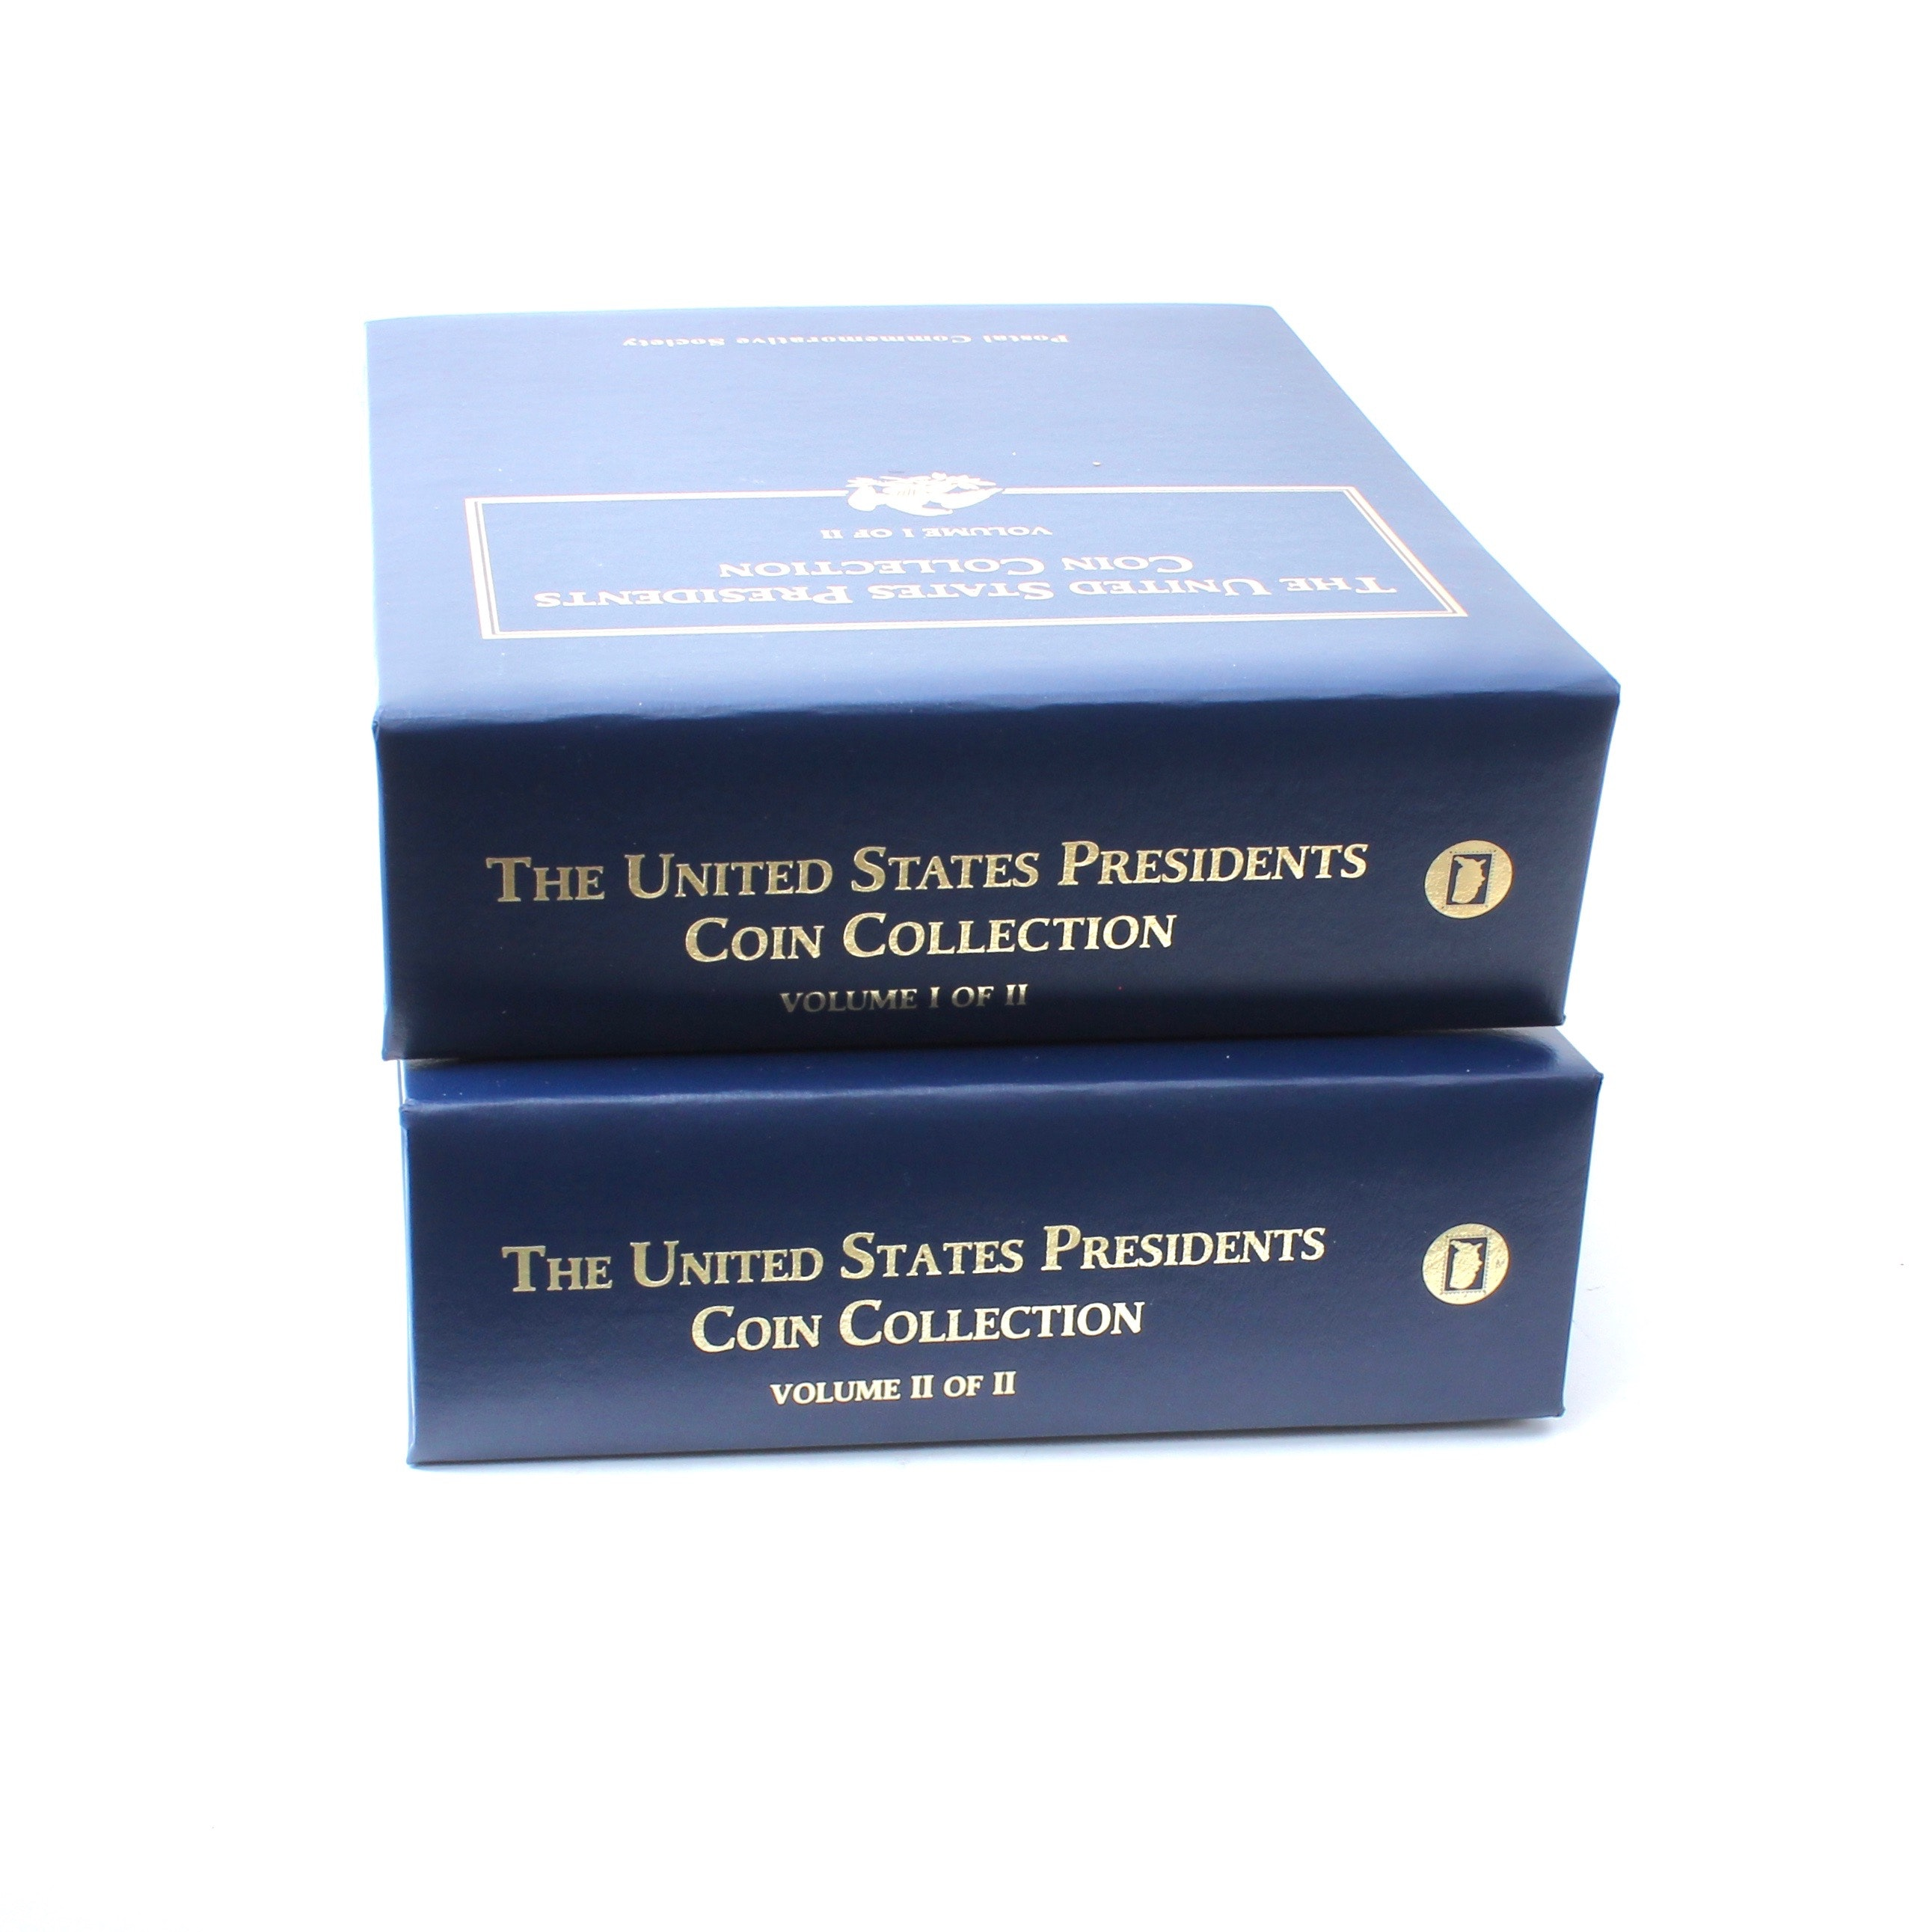 The United States President Coin Collection Volumes I & II